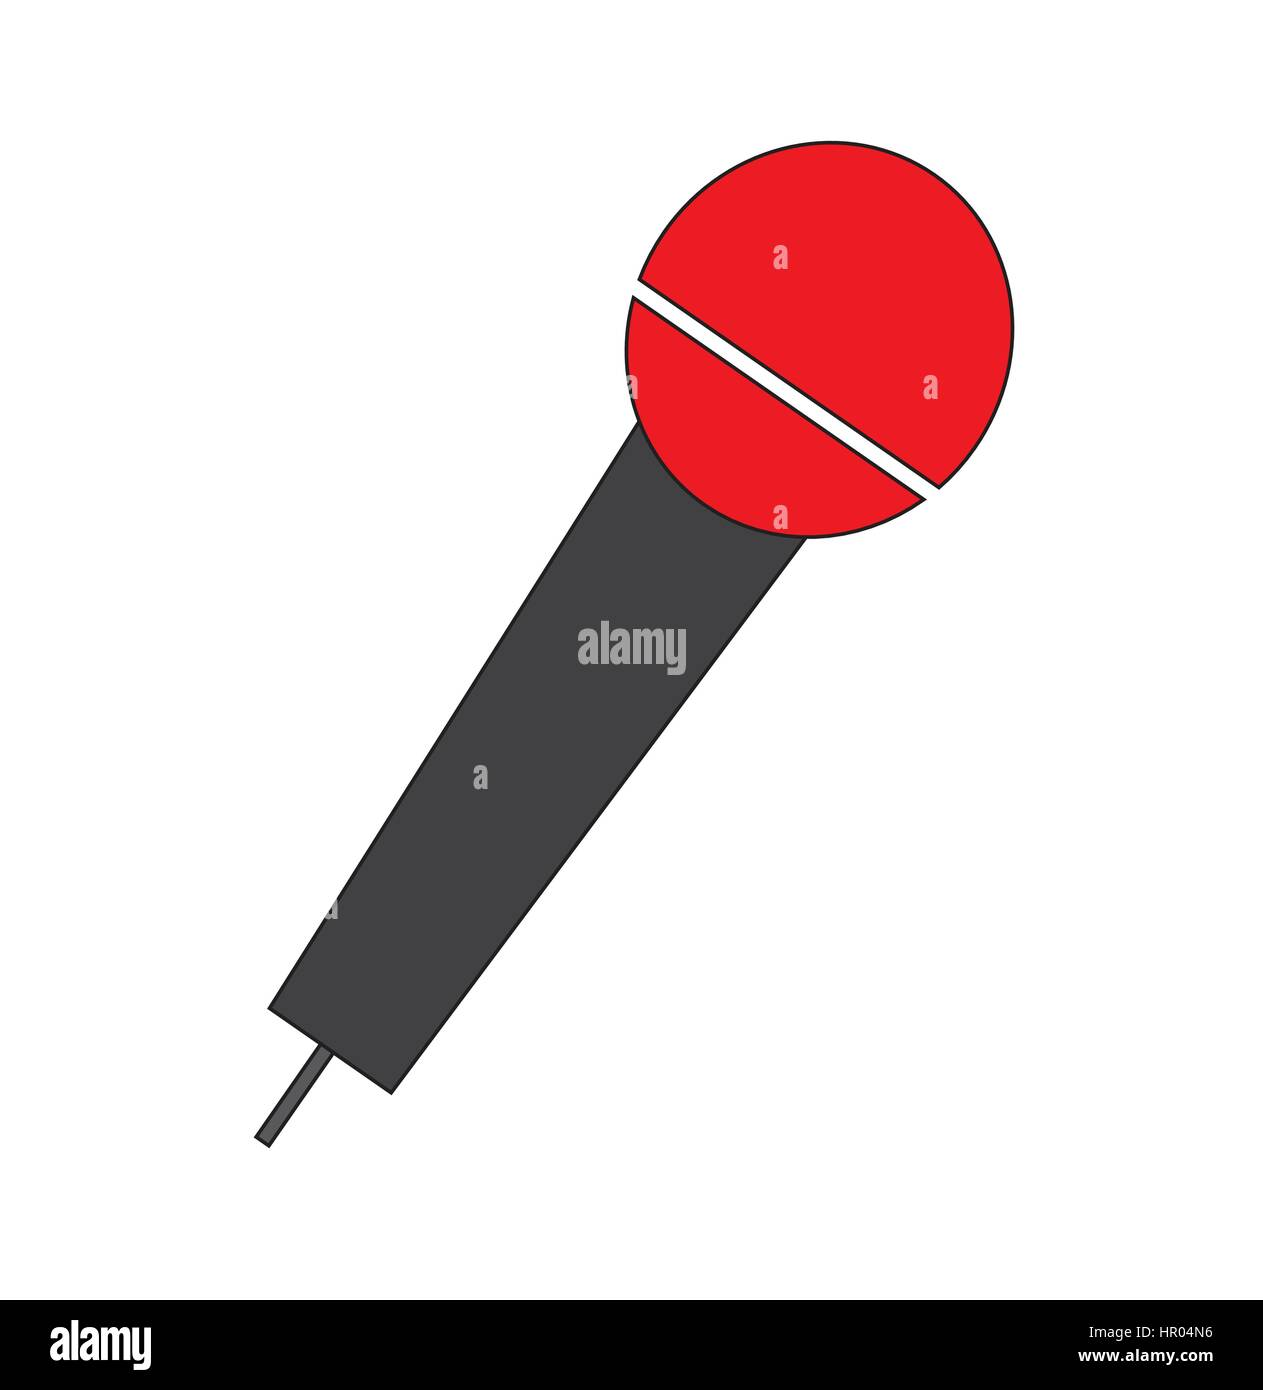 Microphone icon vector isolated in white background. - Stock Image